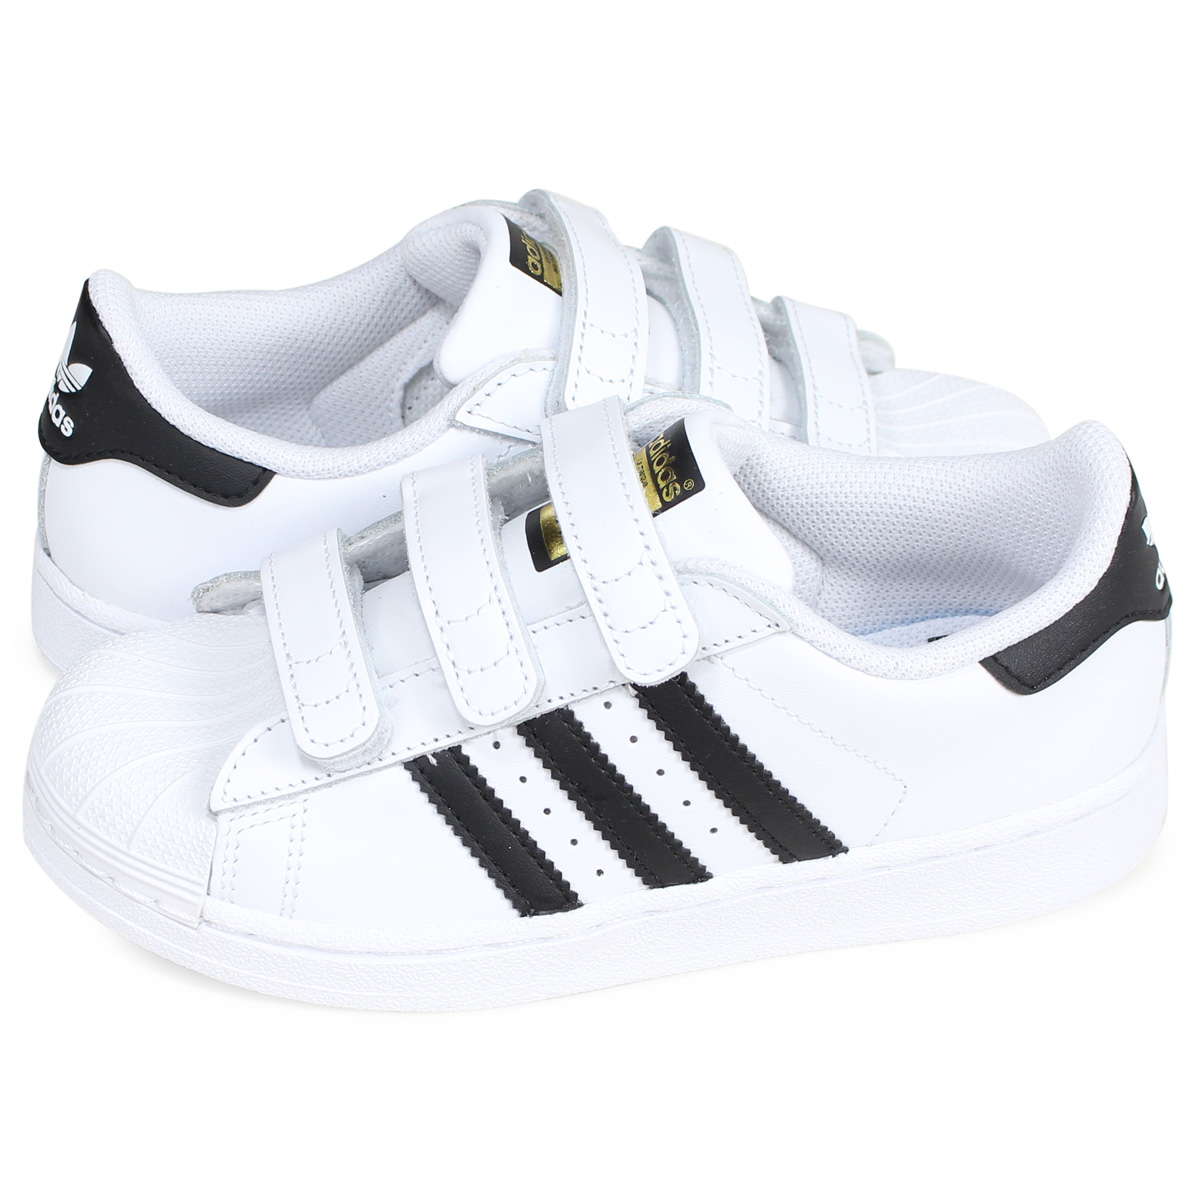 adidas Originals SUPERSTAR FOUNDATION CF C Adidas originals superstar sneakers kids Velcro white white B26070